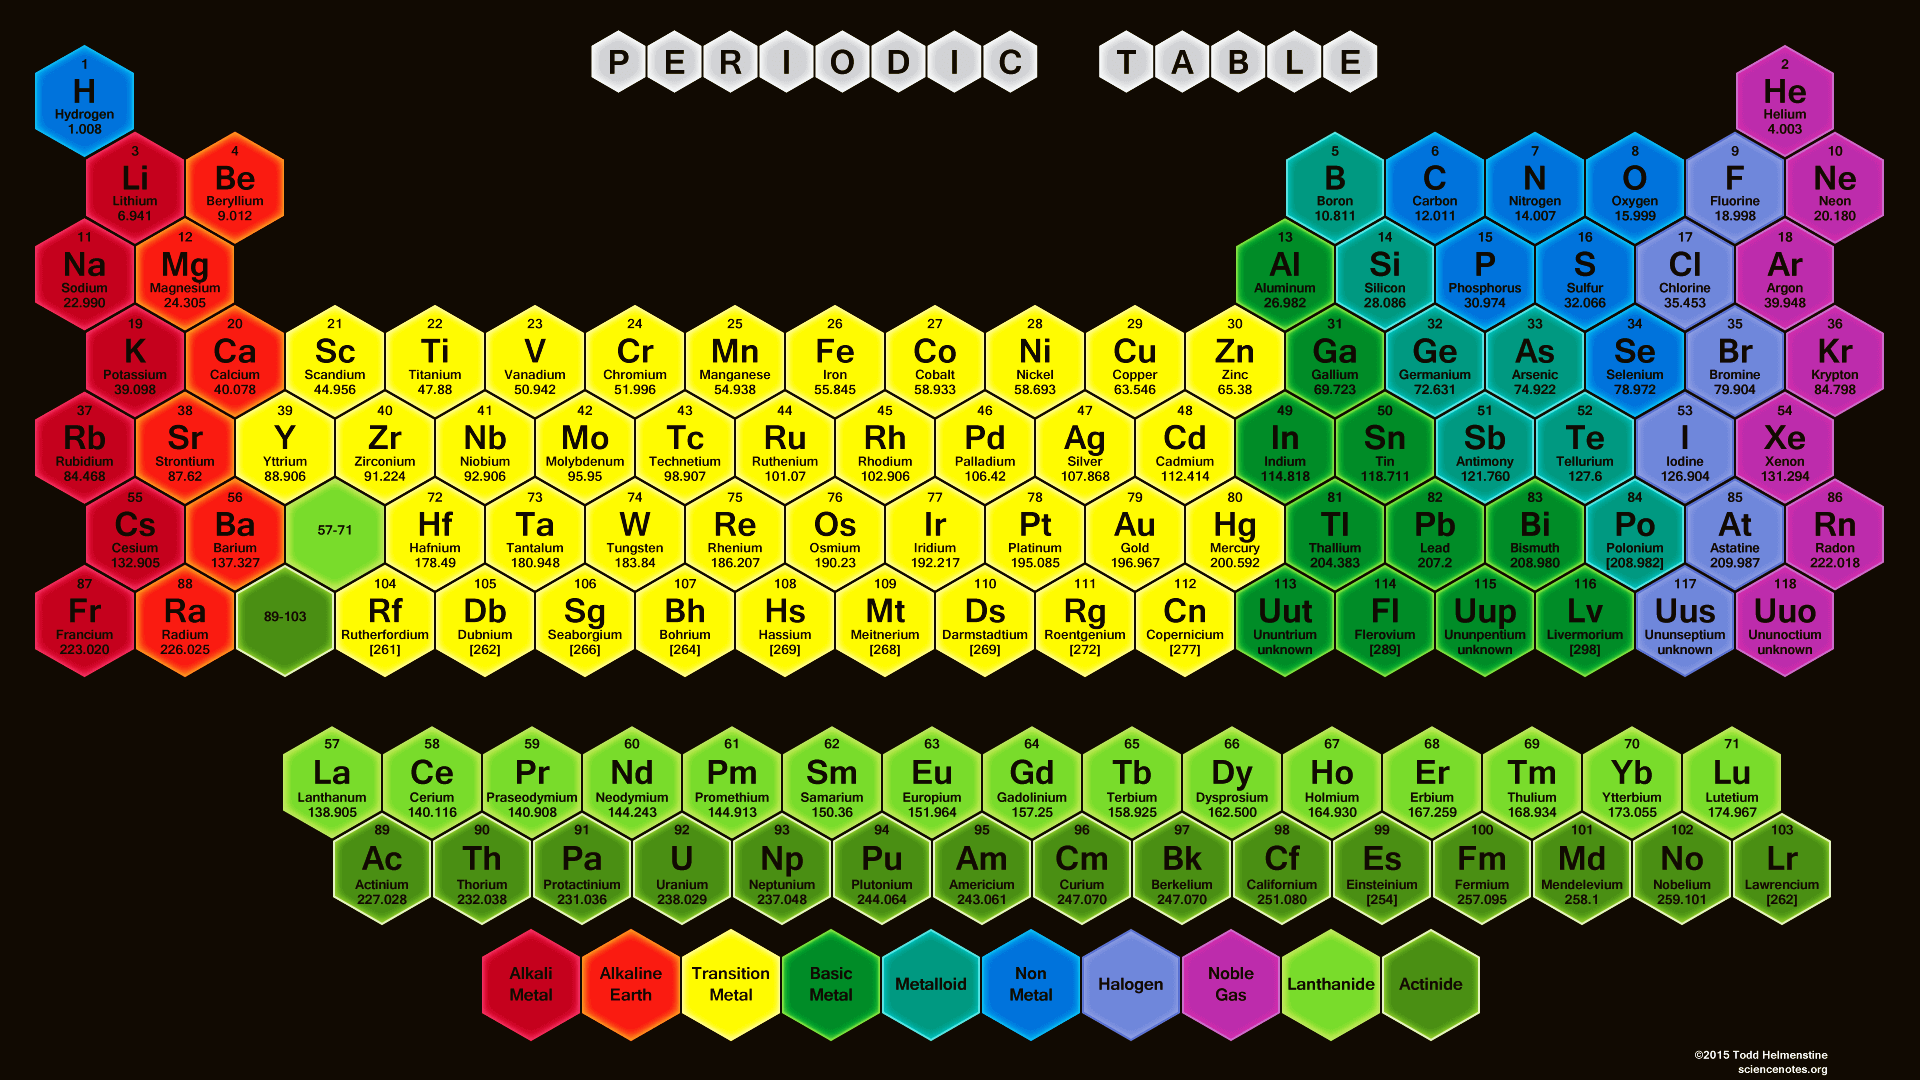 Periodic table wallpapers science notes and projects color hexagon periodic table wallpaper gamestrikefo Choice Image